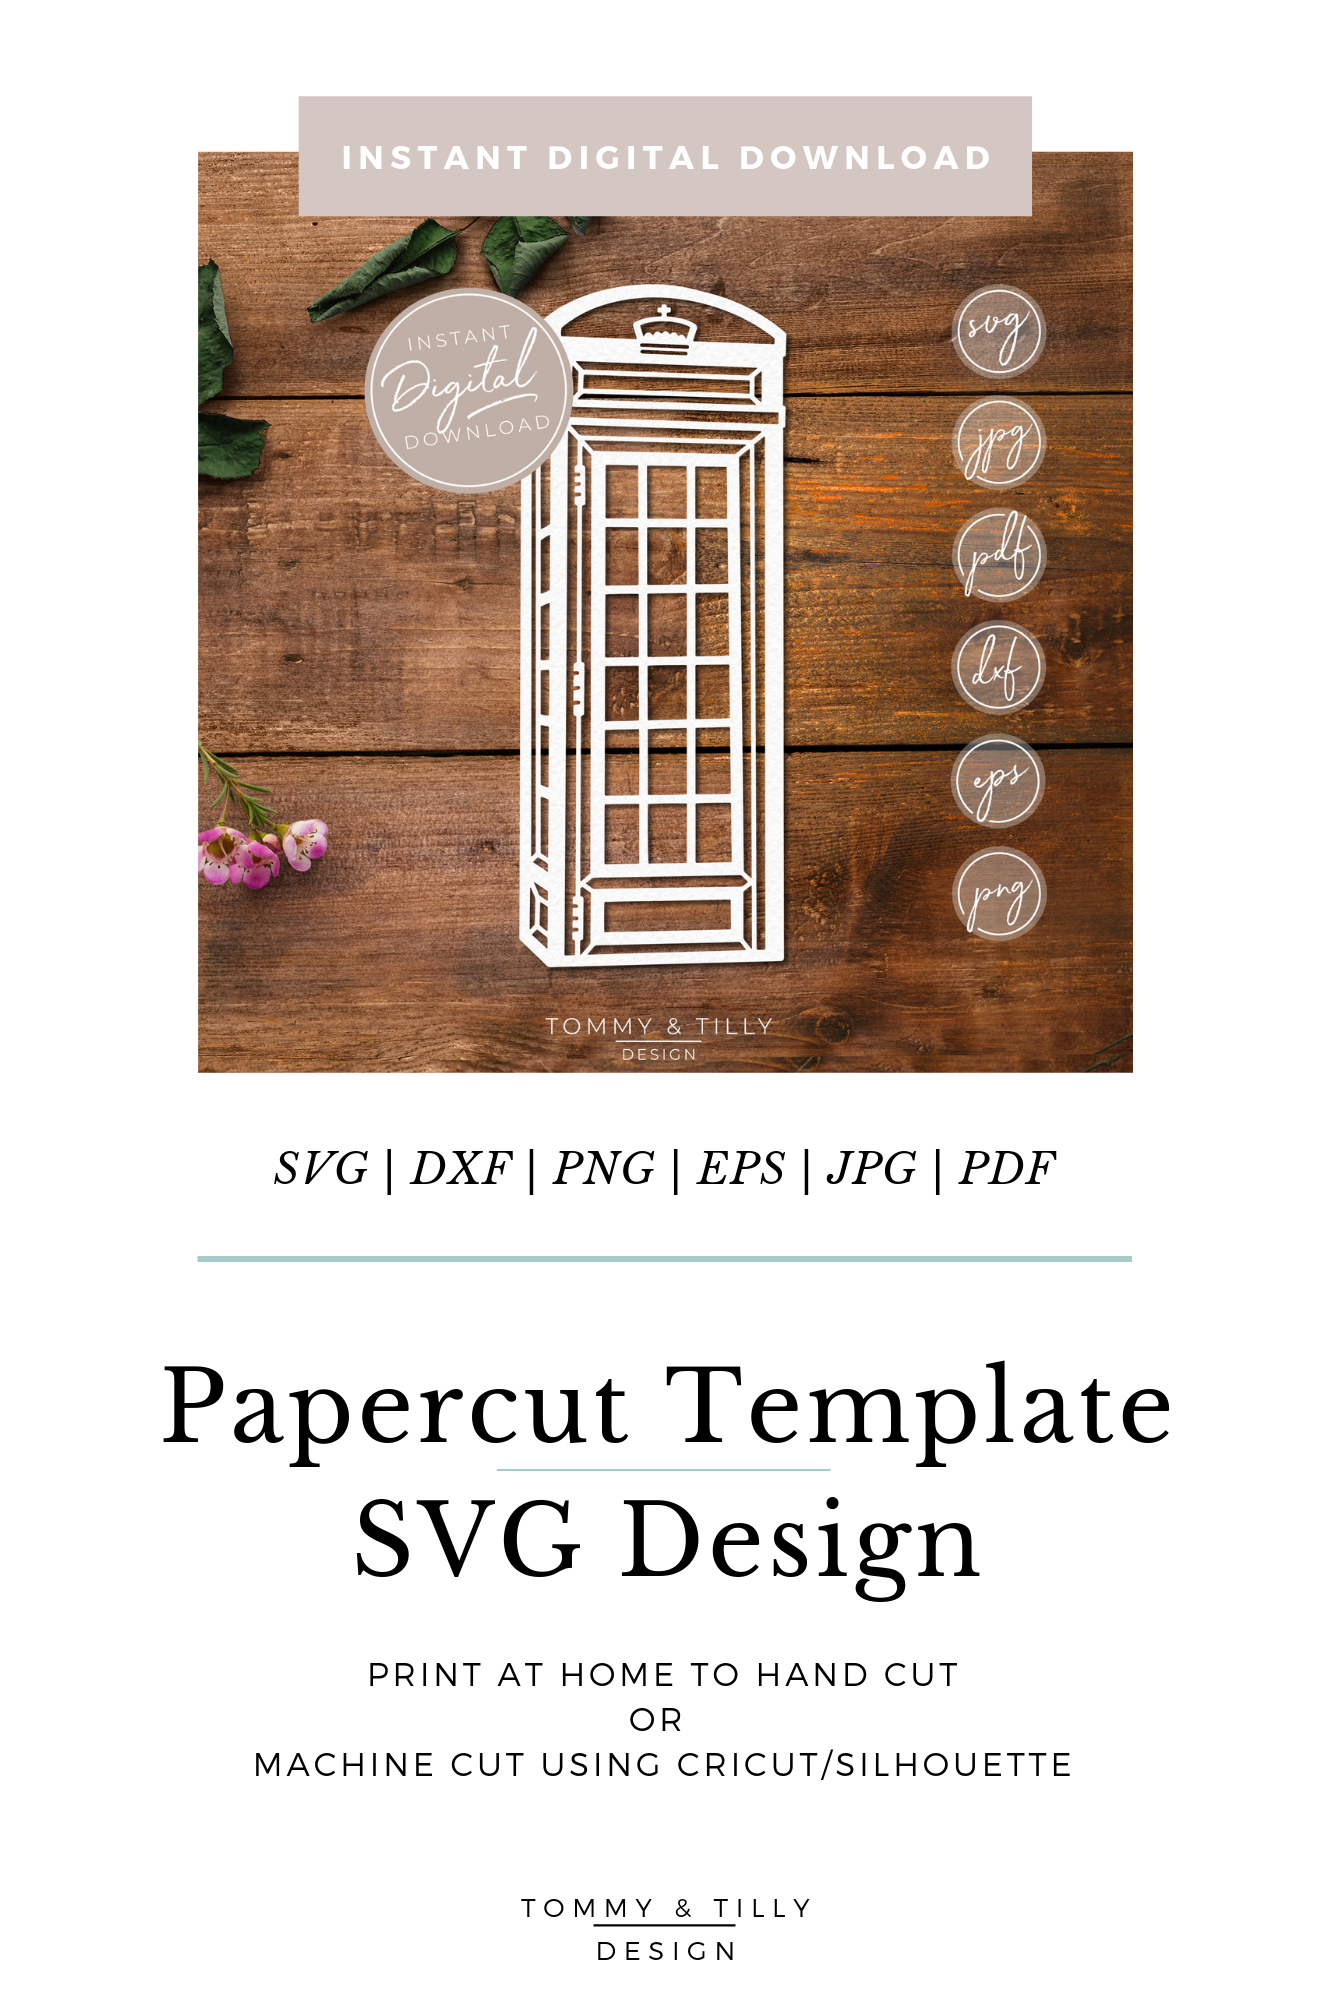 Telephone Box - SVG EPS DXF PNG PDF JPG Cut File example image 10